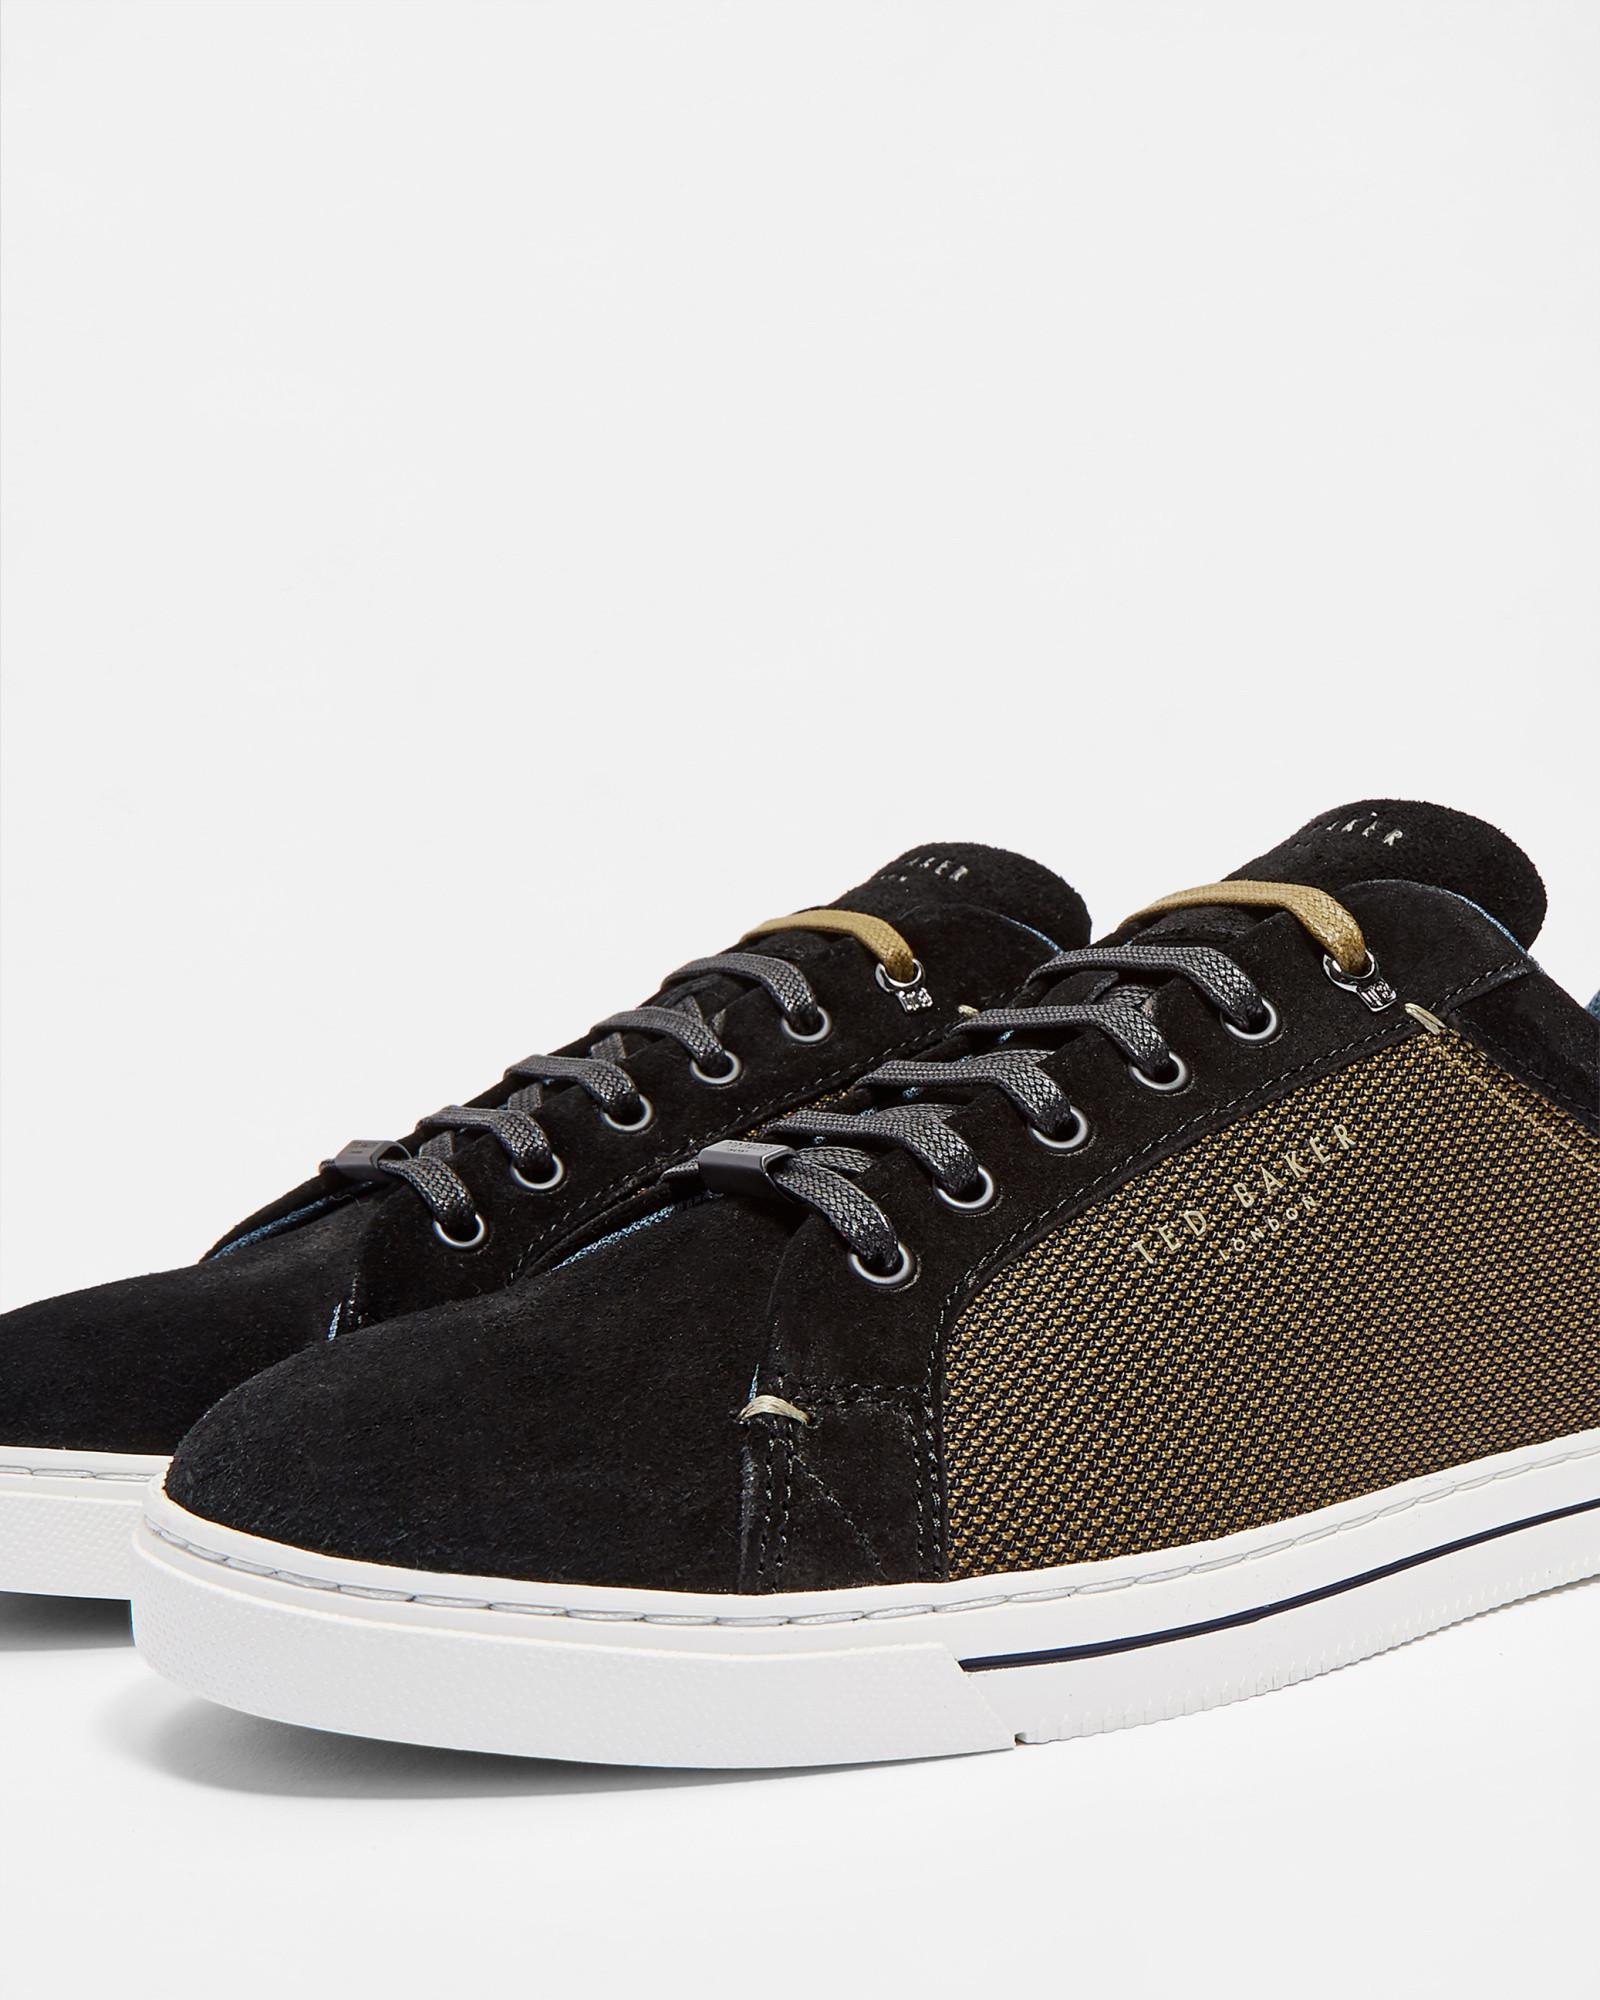 510e32706b0a Lyst - Ted Baker Classic Derby Suede Trainers in Black for Men